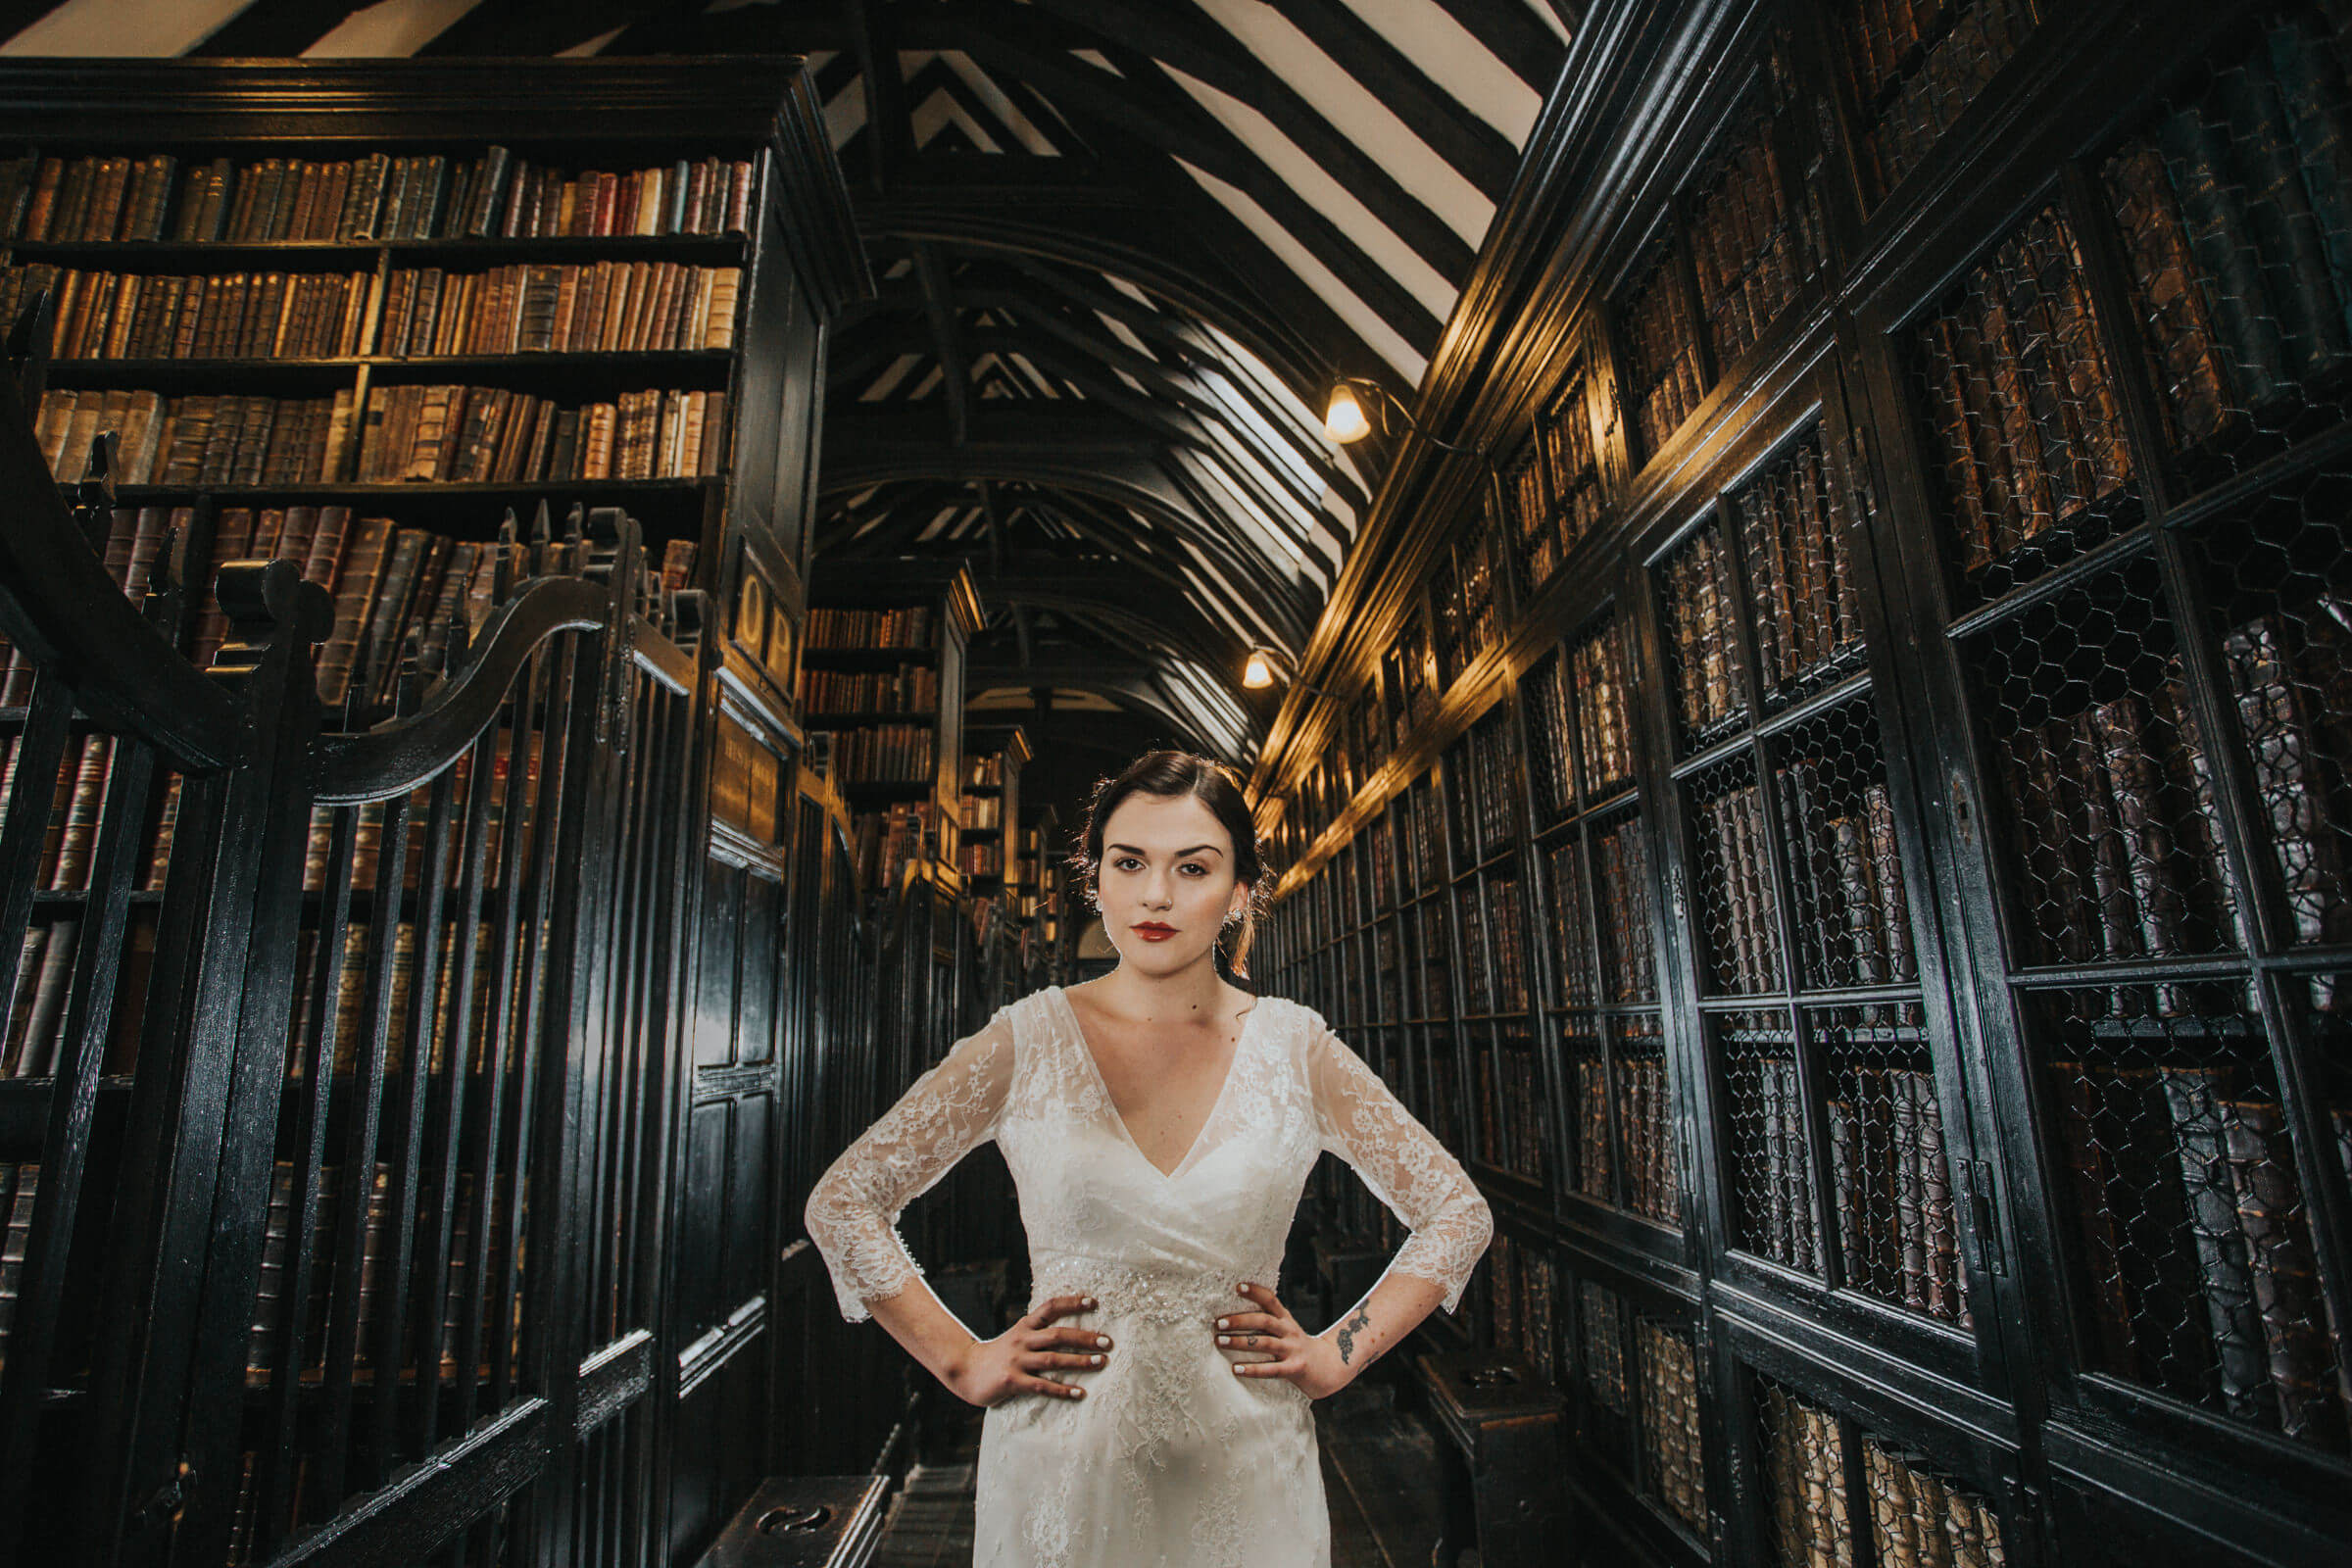 Manchester Wedding Photographer Stephen McGowan Chethams School of Music 35.jpg